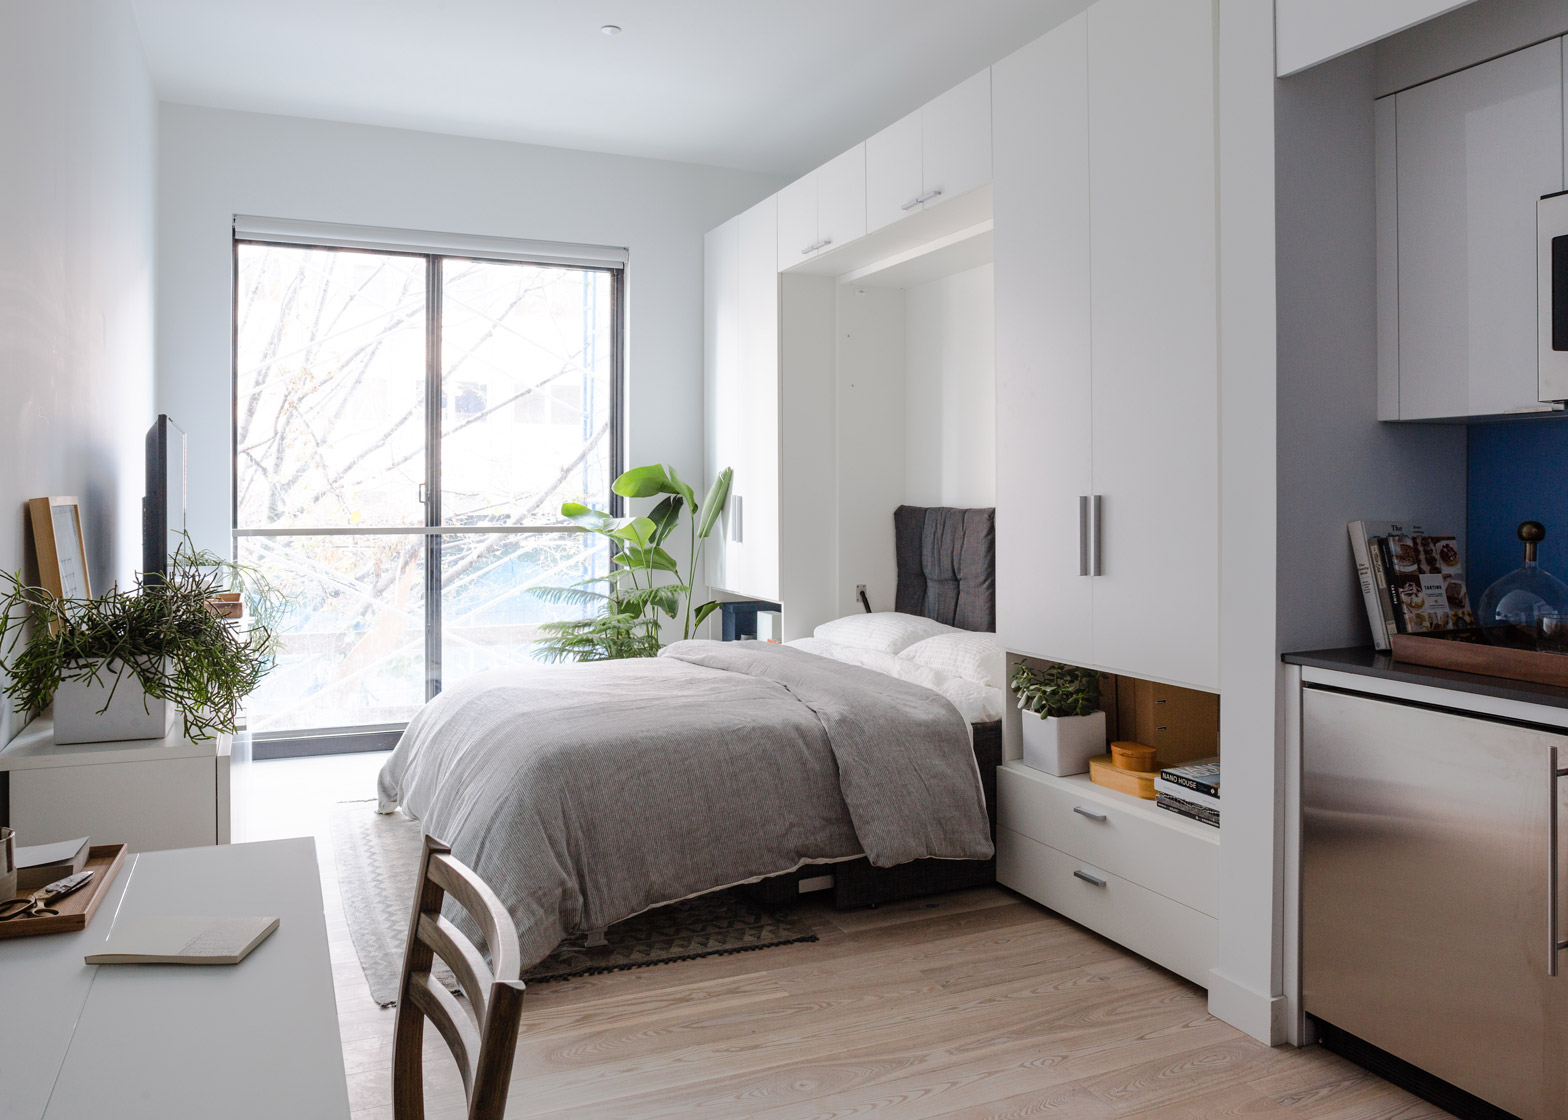 Captivating Micro Apartments Could Help Cities Retain Their Diversity Says Ian Schrager